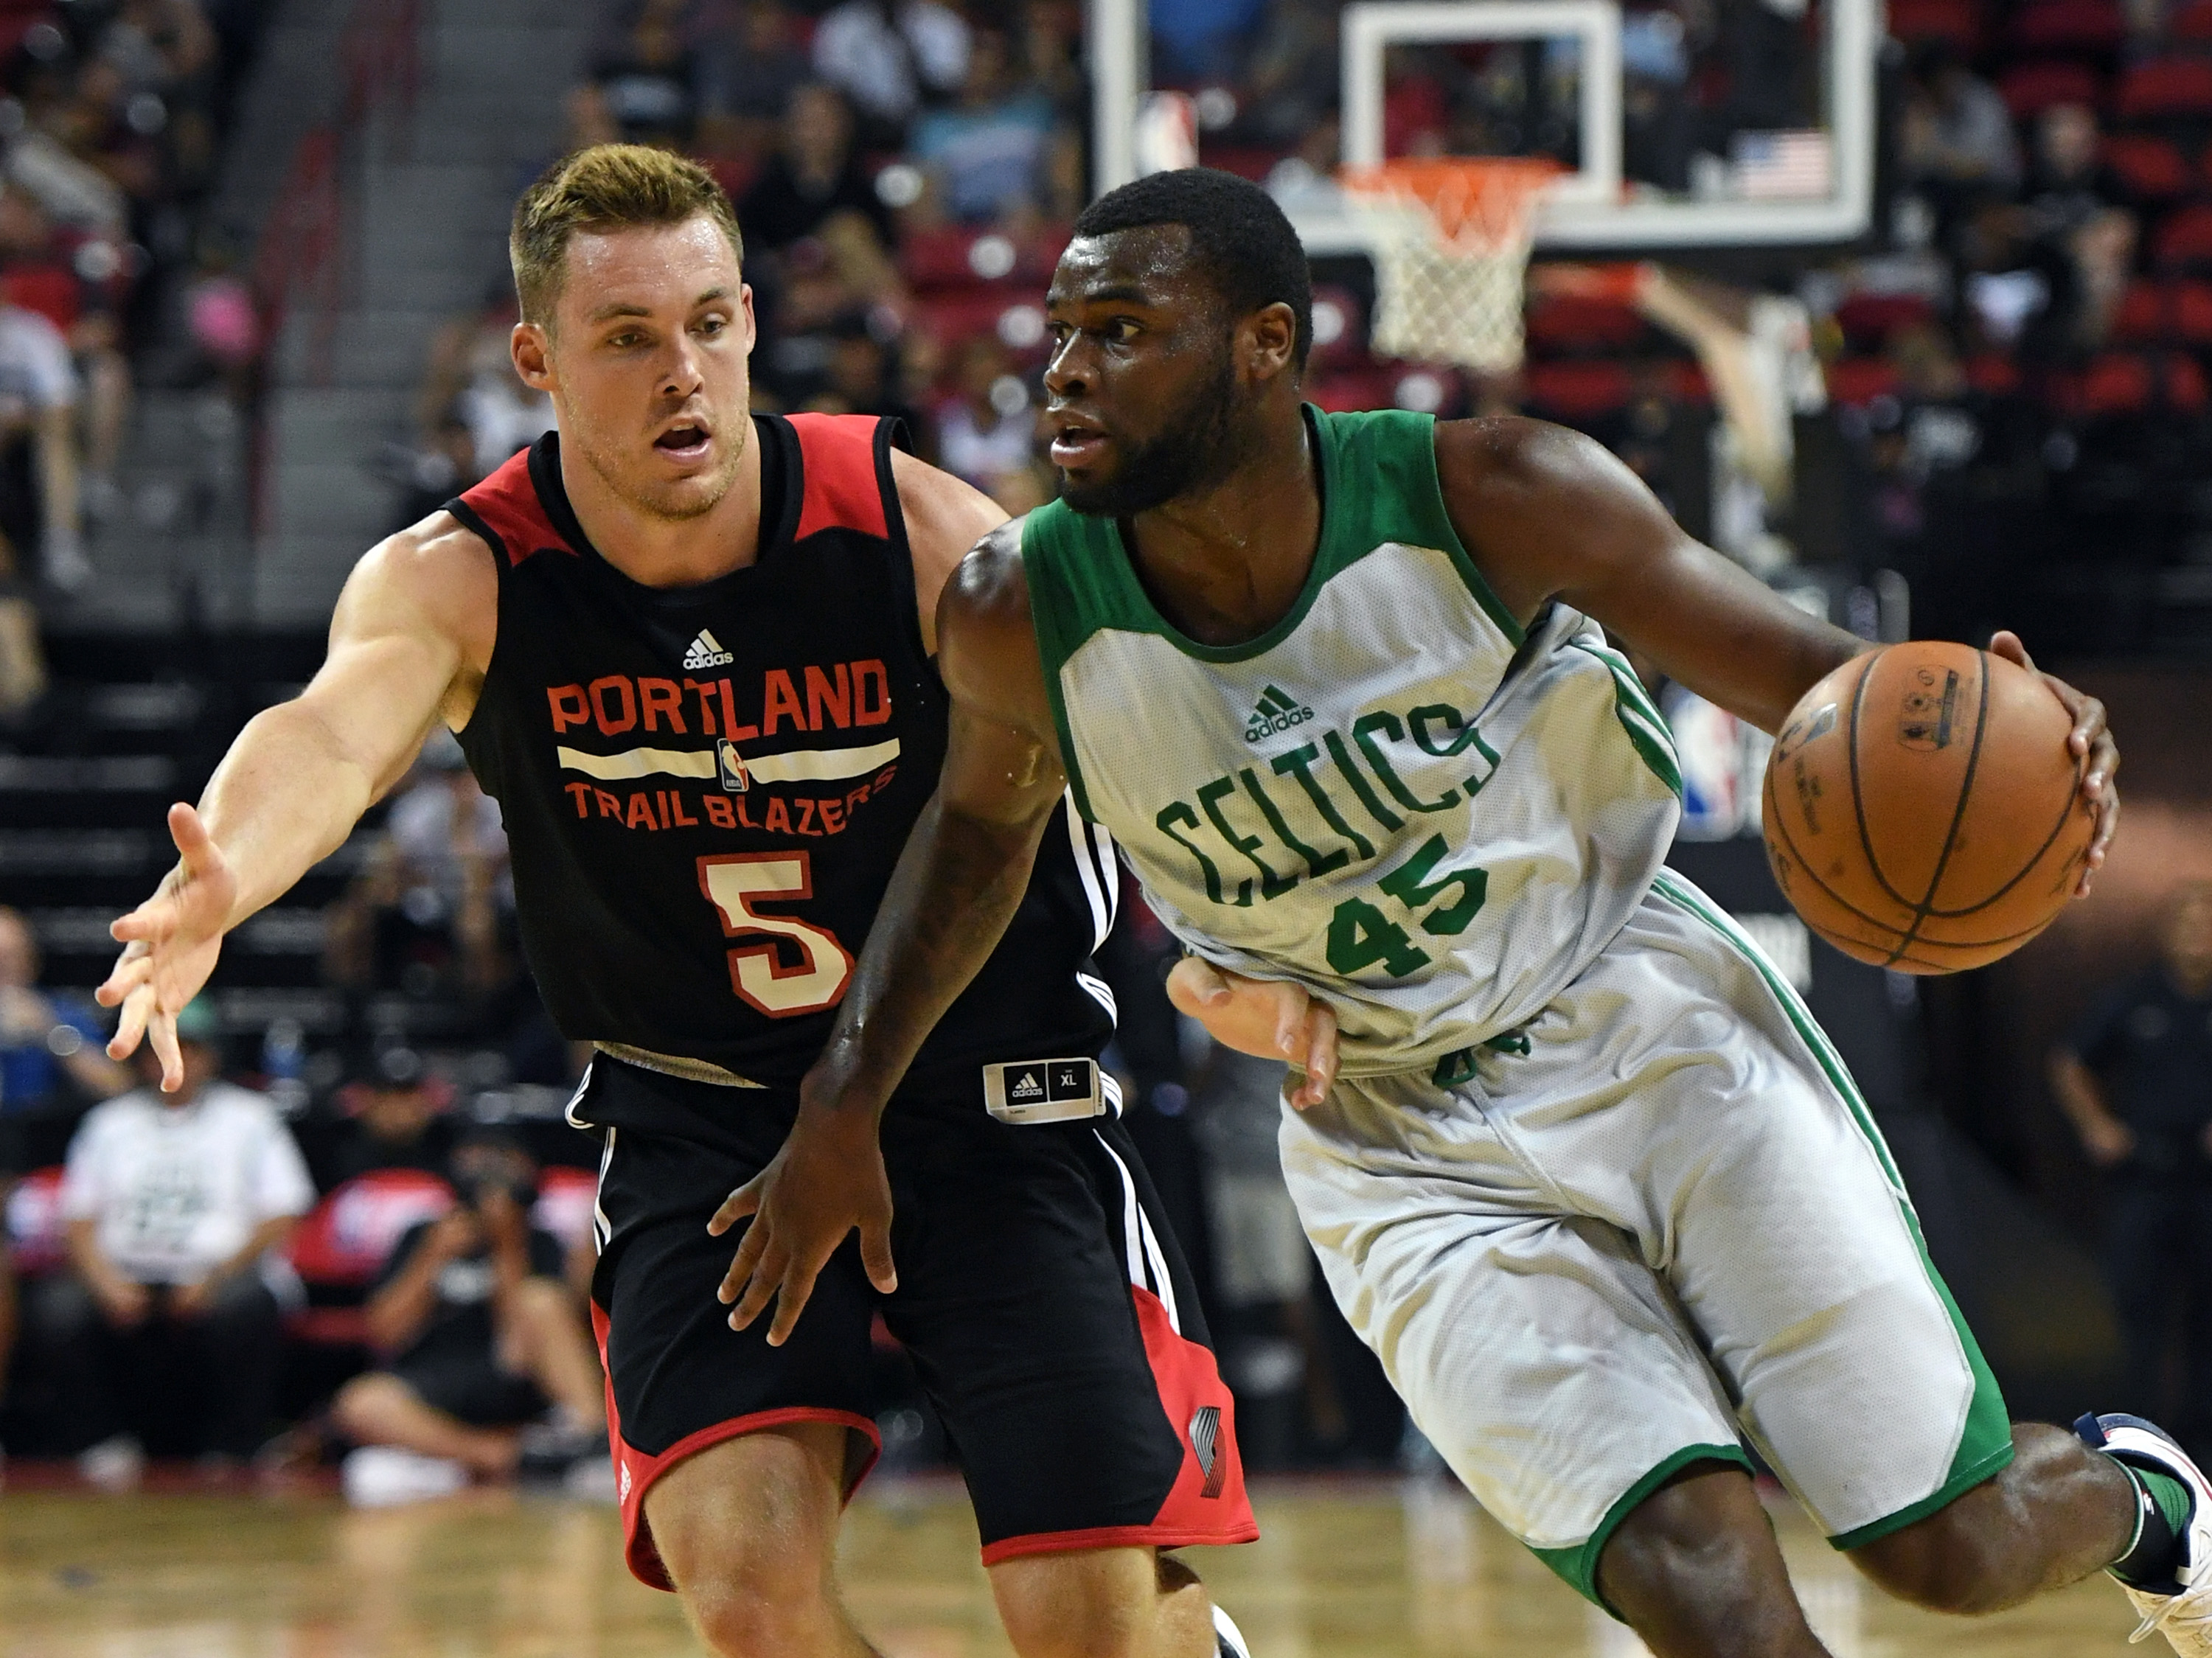 811576318-2017-las-vegas-summer-league-portland-trail-blazers-v-boston-celtics.jpg